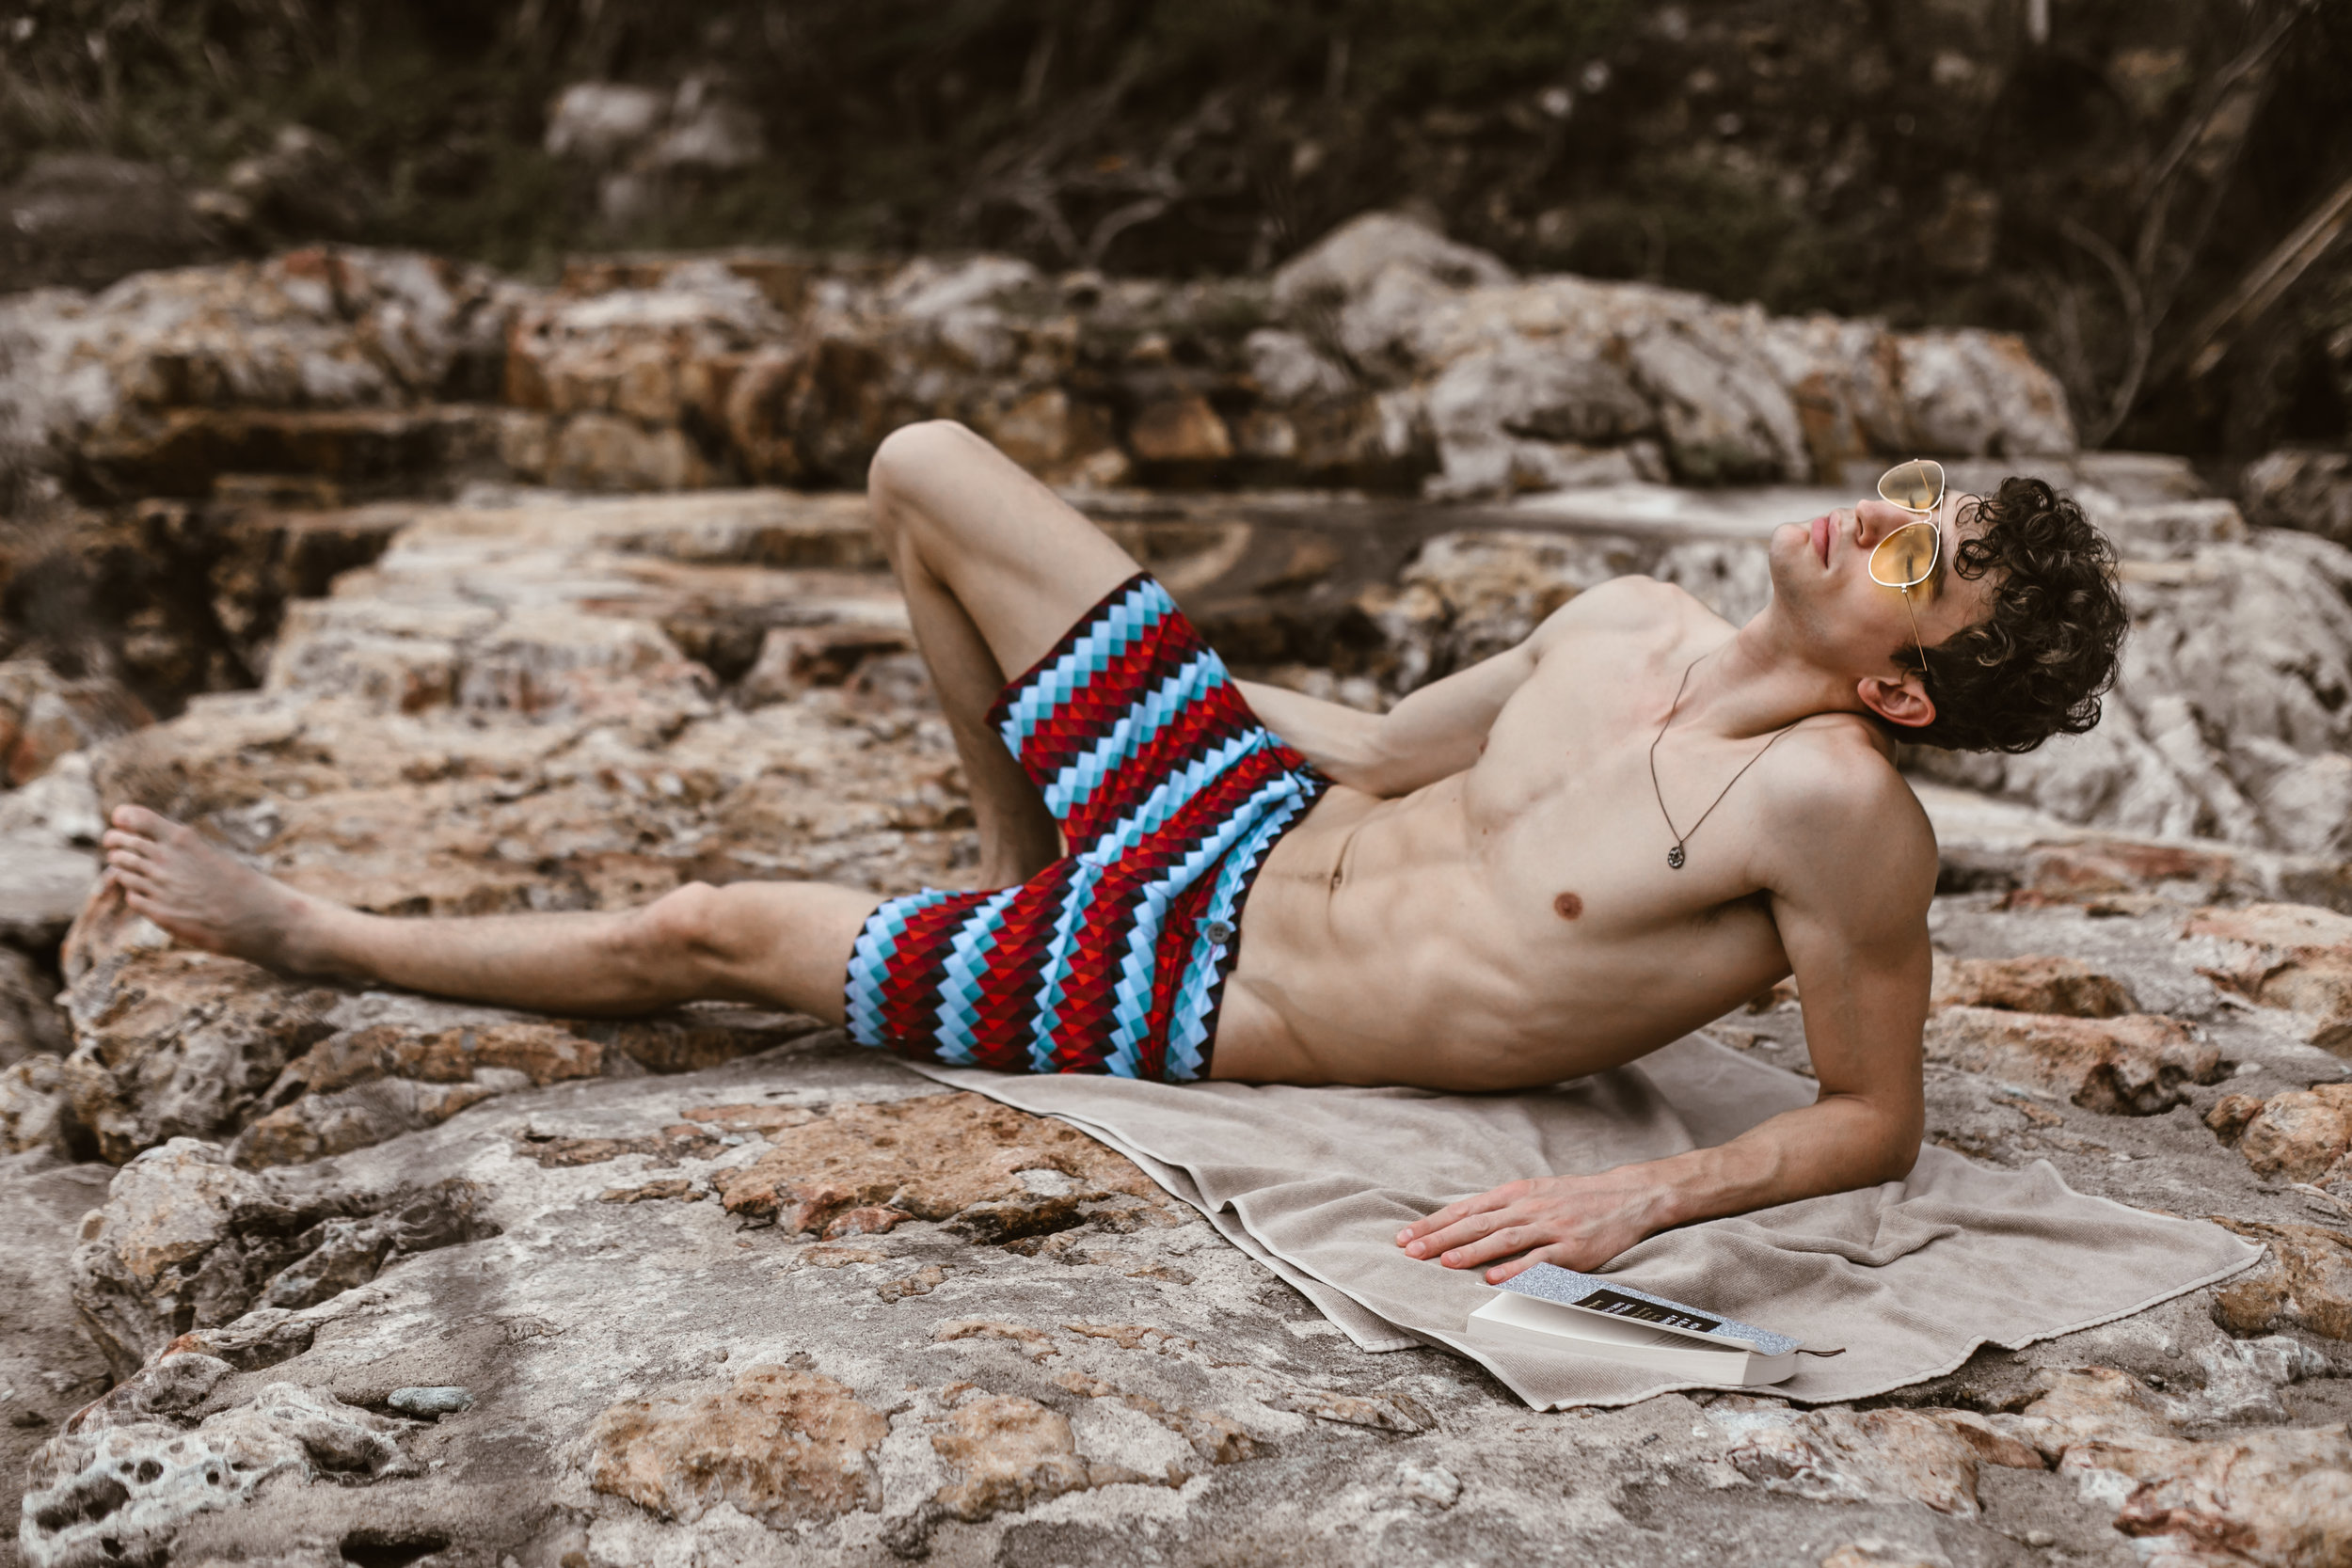 darren wong photography portrait luke farnworth for Parke & Ronen quest model Hong Kong